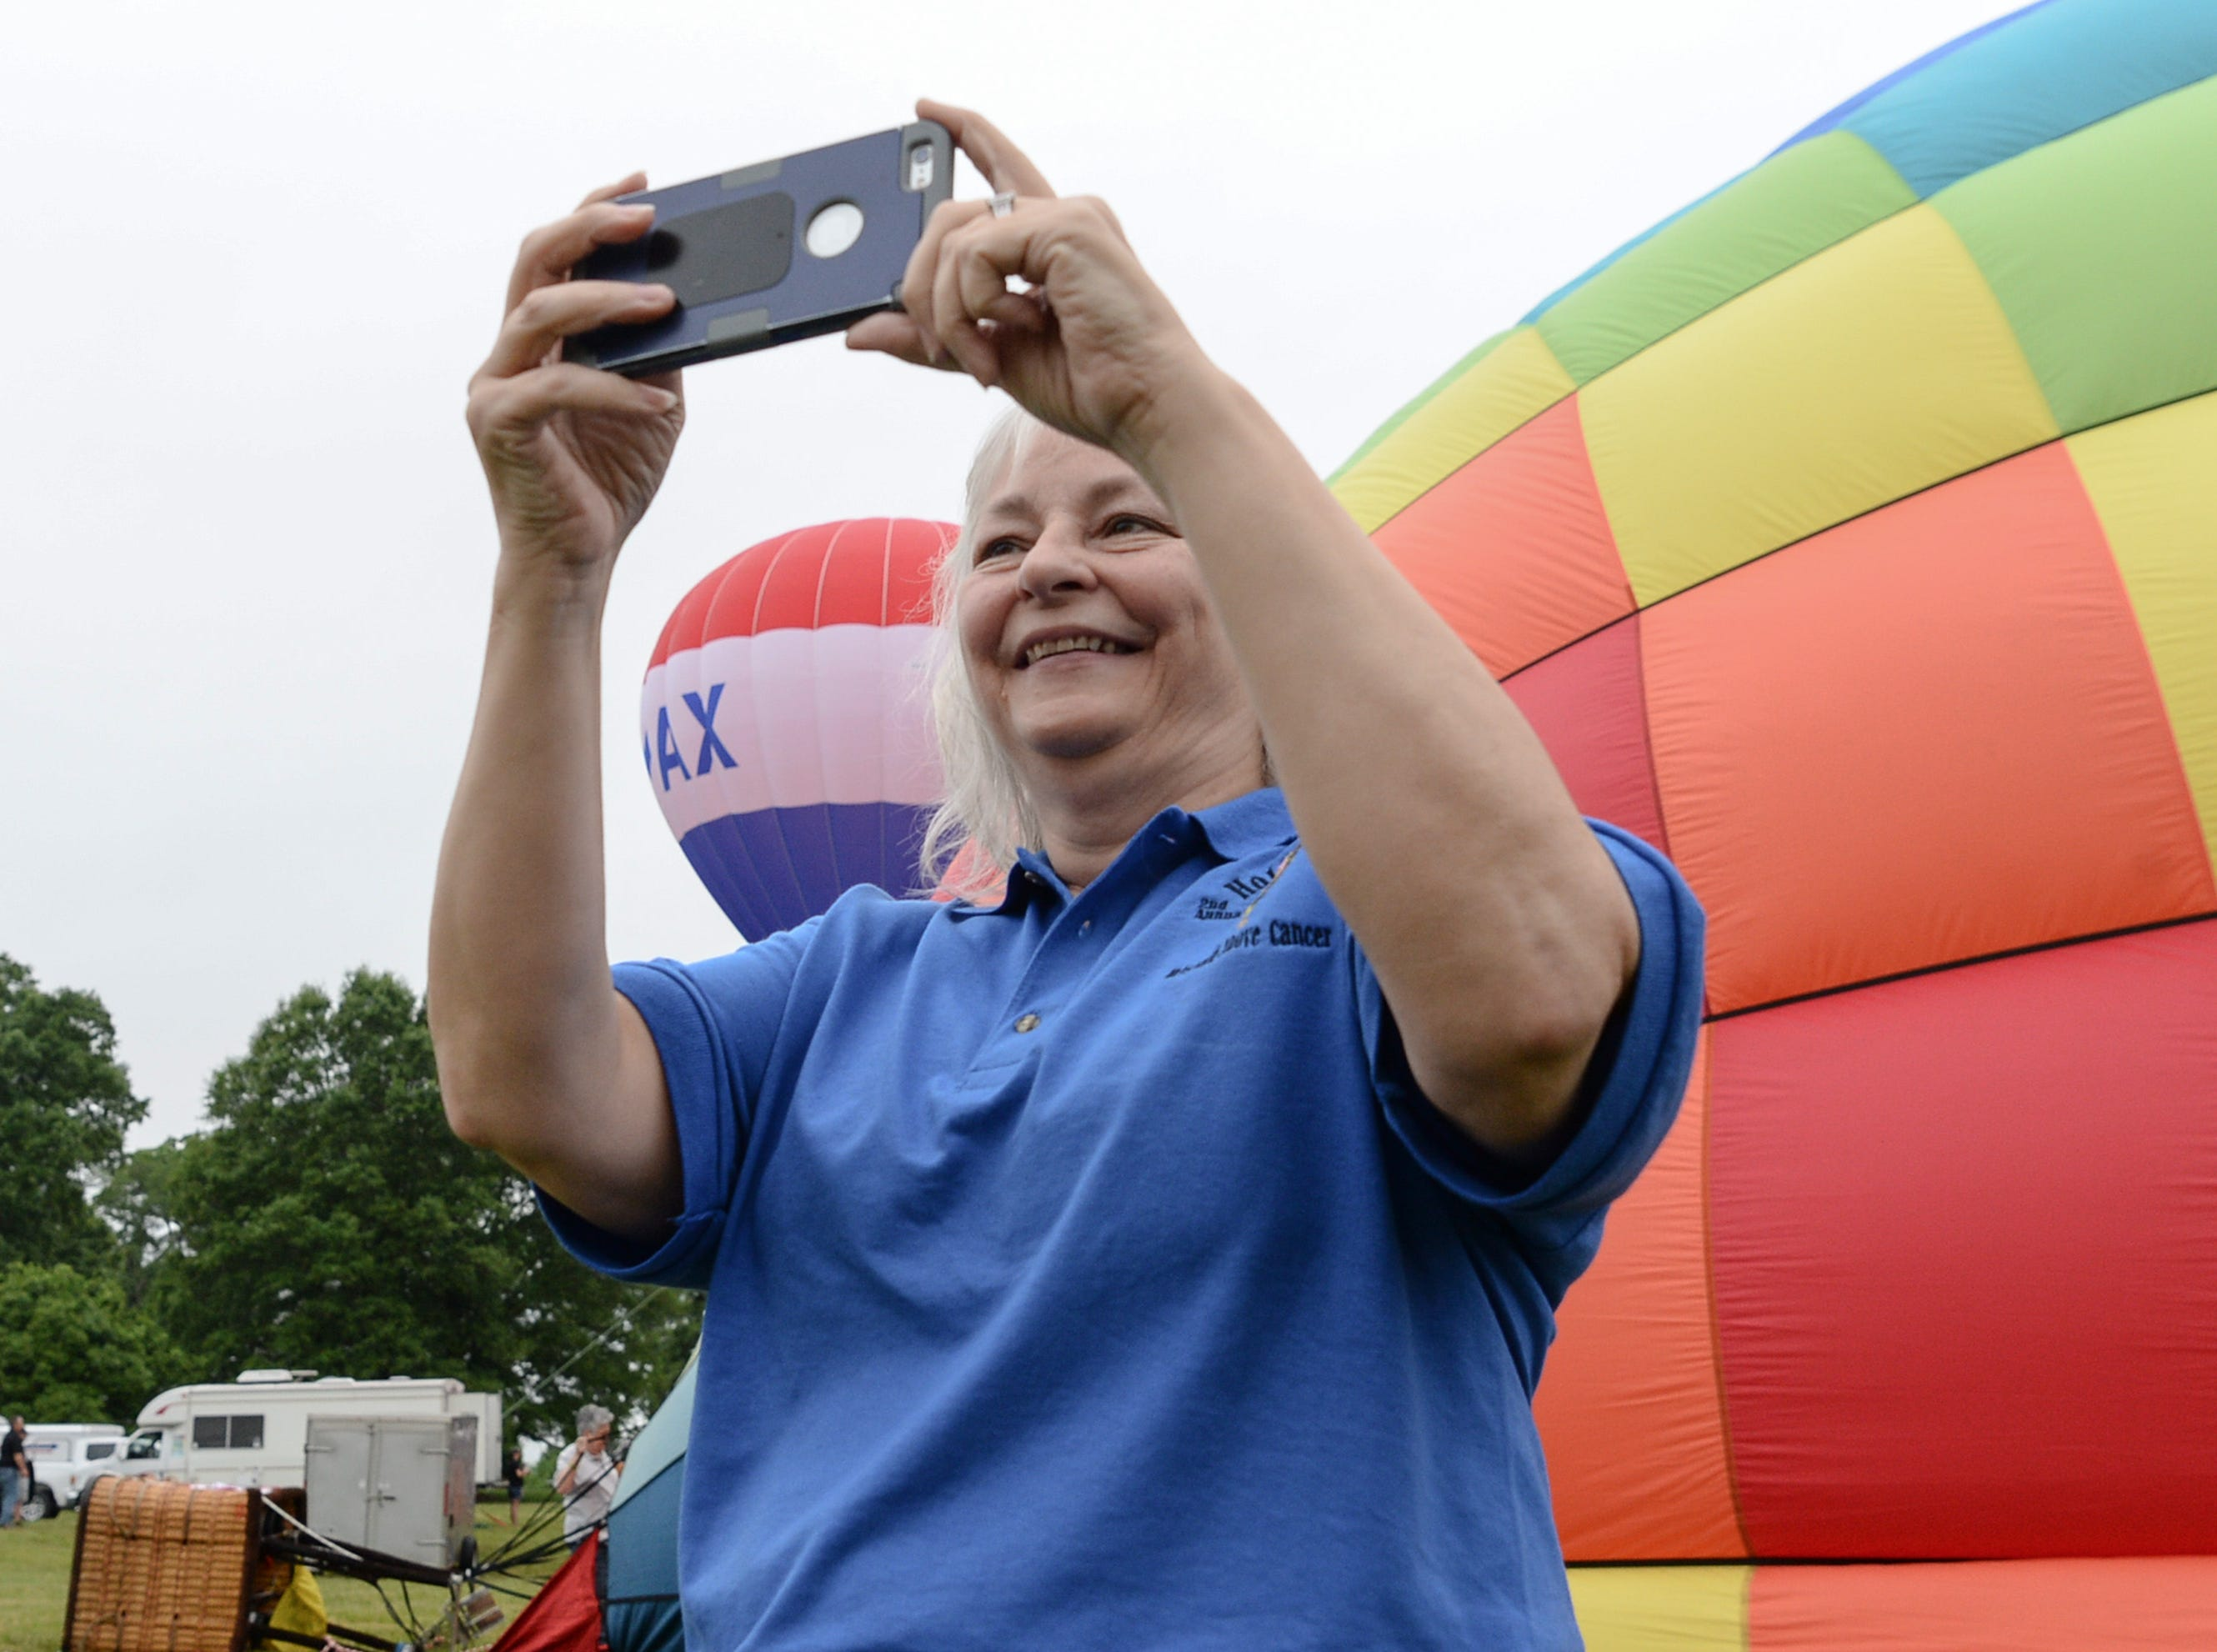 "Angela Stringer, executive director of the Cancer Association of Anderson gets photos during a morning flight over Rocky River Plantation for the Cancer Association of Anderson Hot Air Balloon Affair in Anderson Friday. The event fundraiser helps the non-profit with helping cancer patients with financial needs and support, which the group executive director Angela Stringer said had 5,000 contacts. ""This is an opportunity for cancer patients, survivors, and their families and caregivers to come out and have a weekend of just peace, and enjoy the balloons. It's just a way to rise above cancer,"" cancer survivor Stringer said."